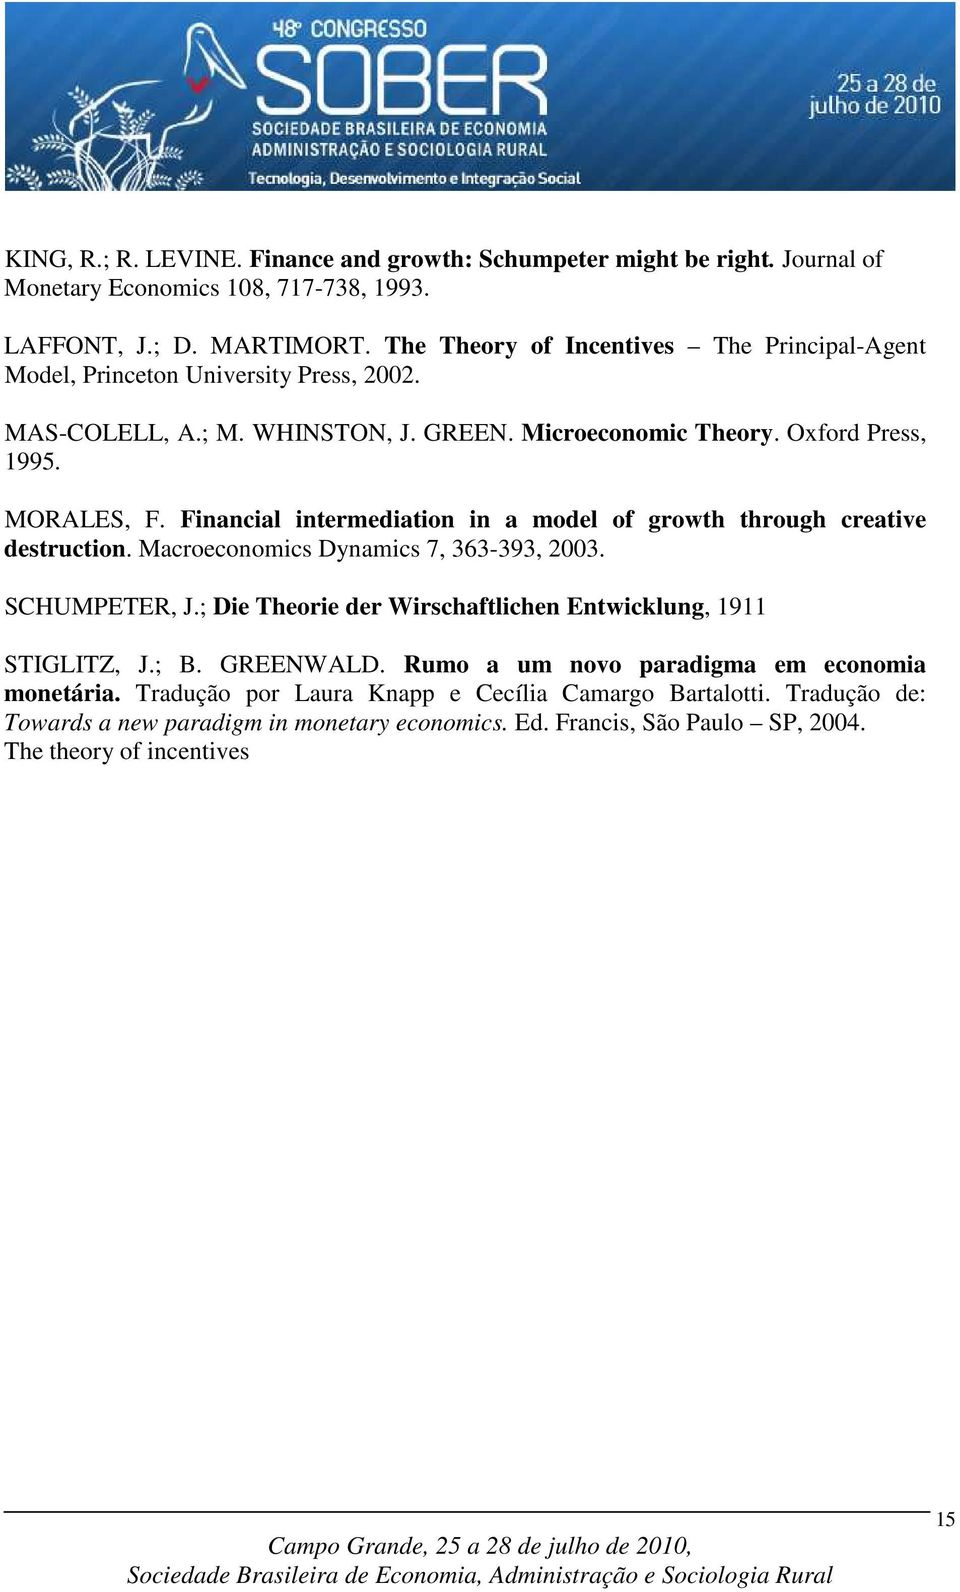 Financia intermediation in a mode of growt troug creative destruction. Macroeconomics Dynamics 7, 363-393, 2003. SCHUMPETER, J.; Die Teorie der Wirscafticen Entwickung, 9 STIGLITZ, J.; B. GREENWALD.